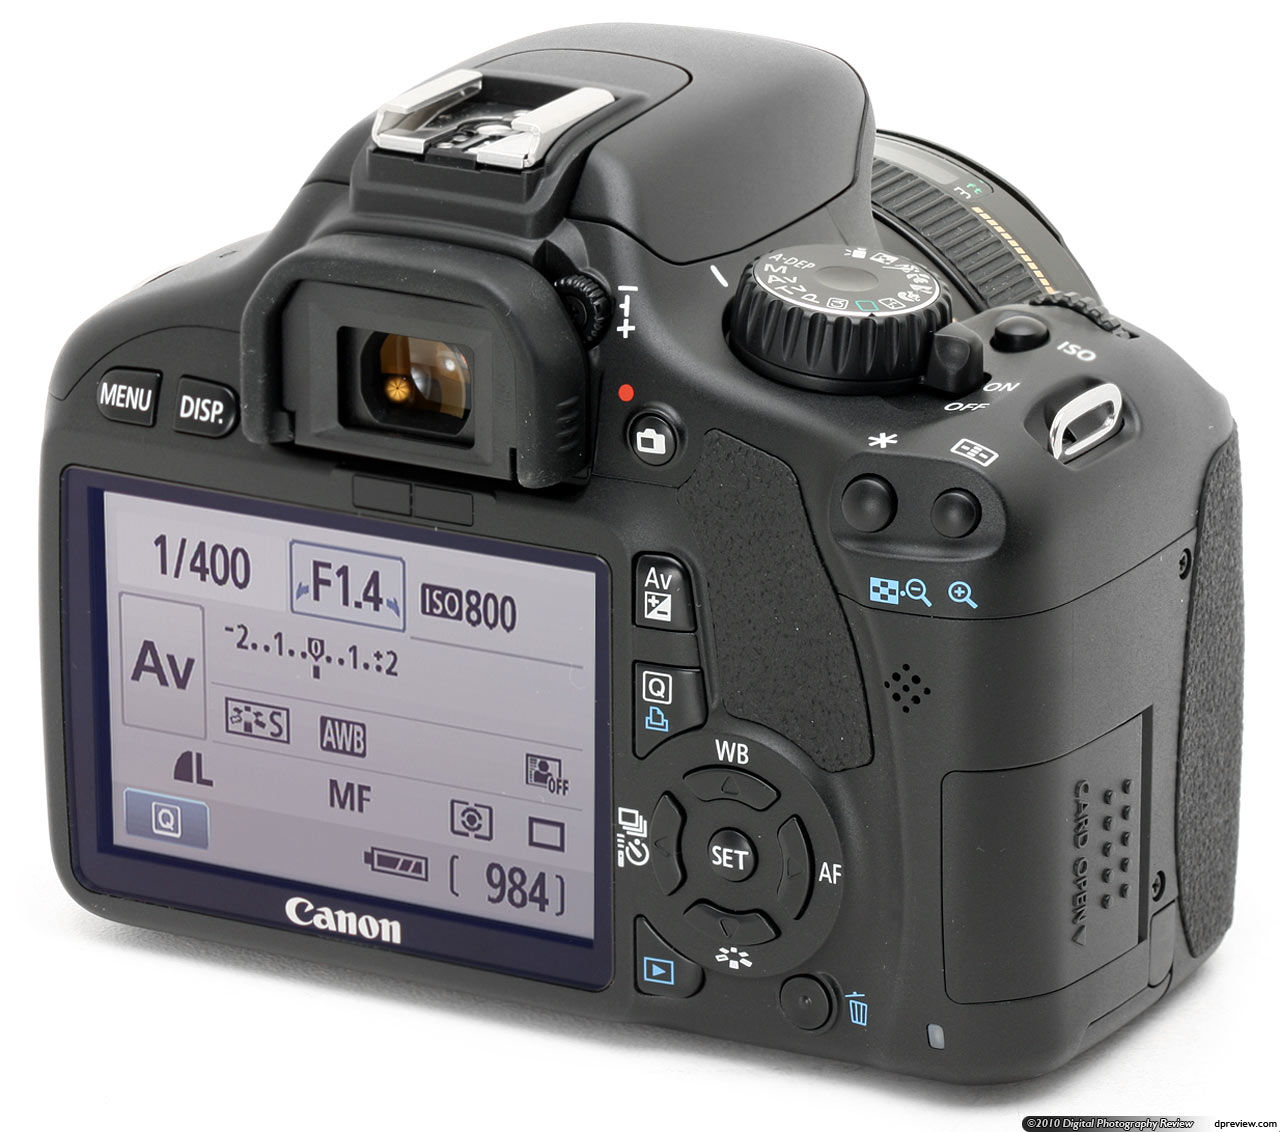 Canon eos 550d review uk dating 2